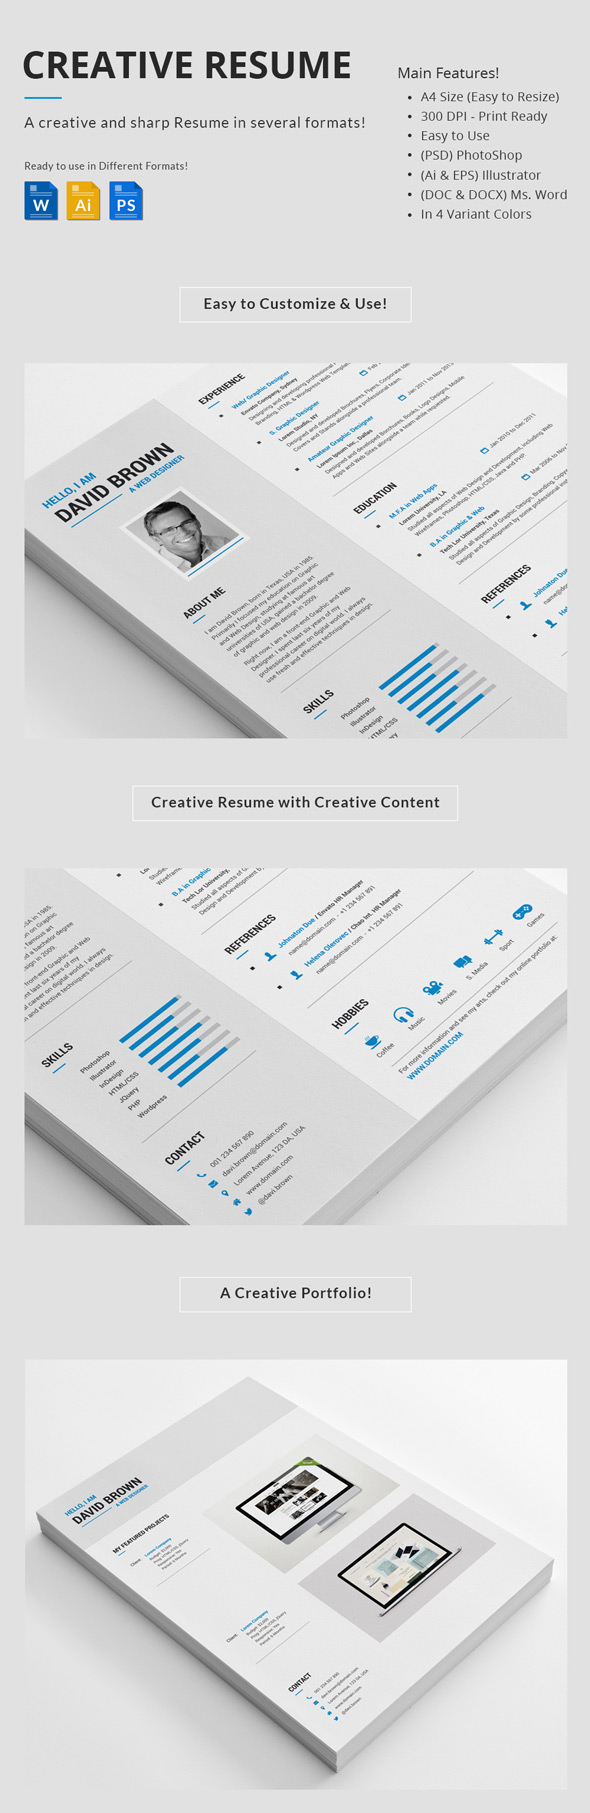 Professional Creative Resume Set  Attractive Resume Templates